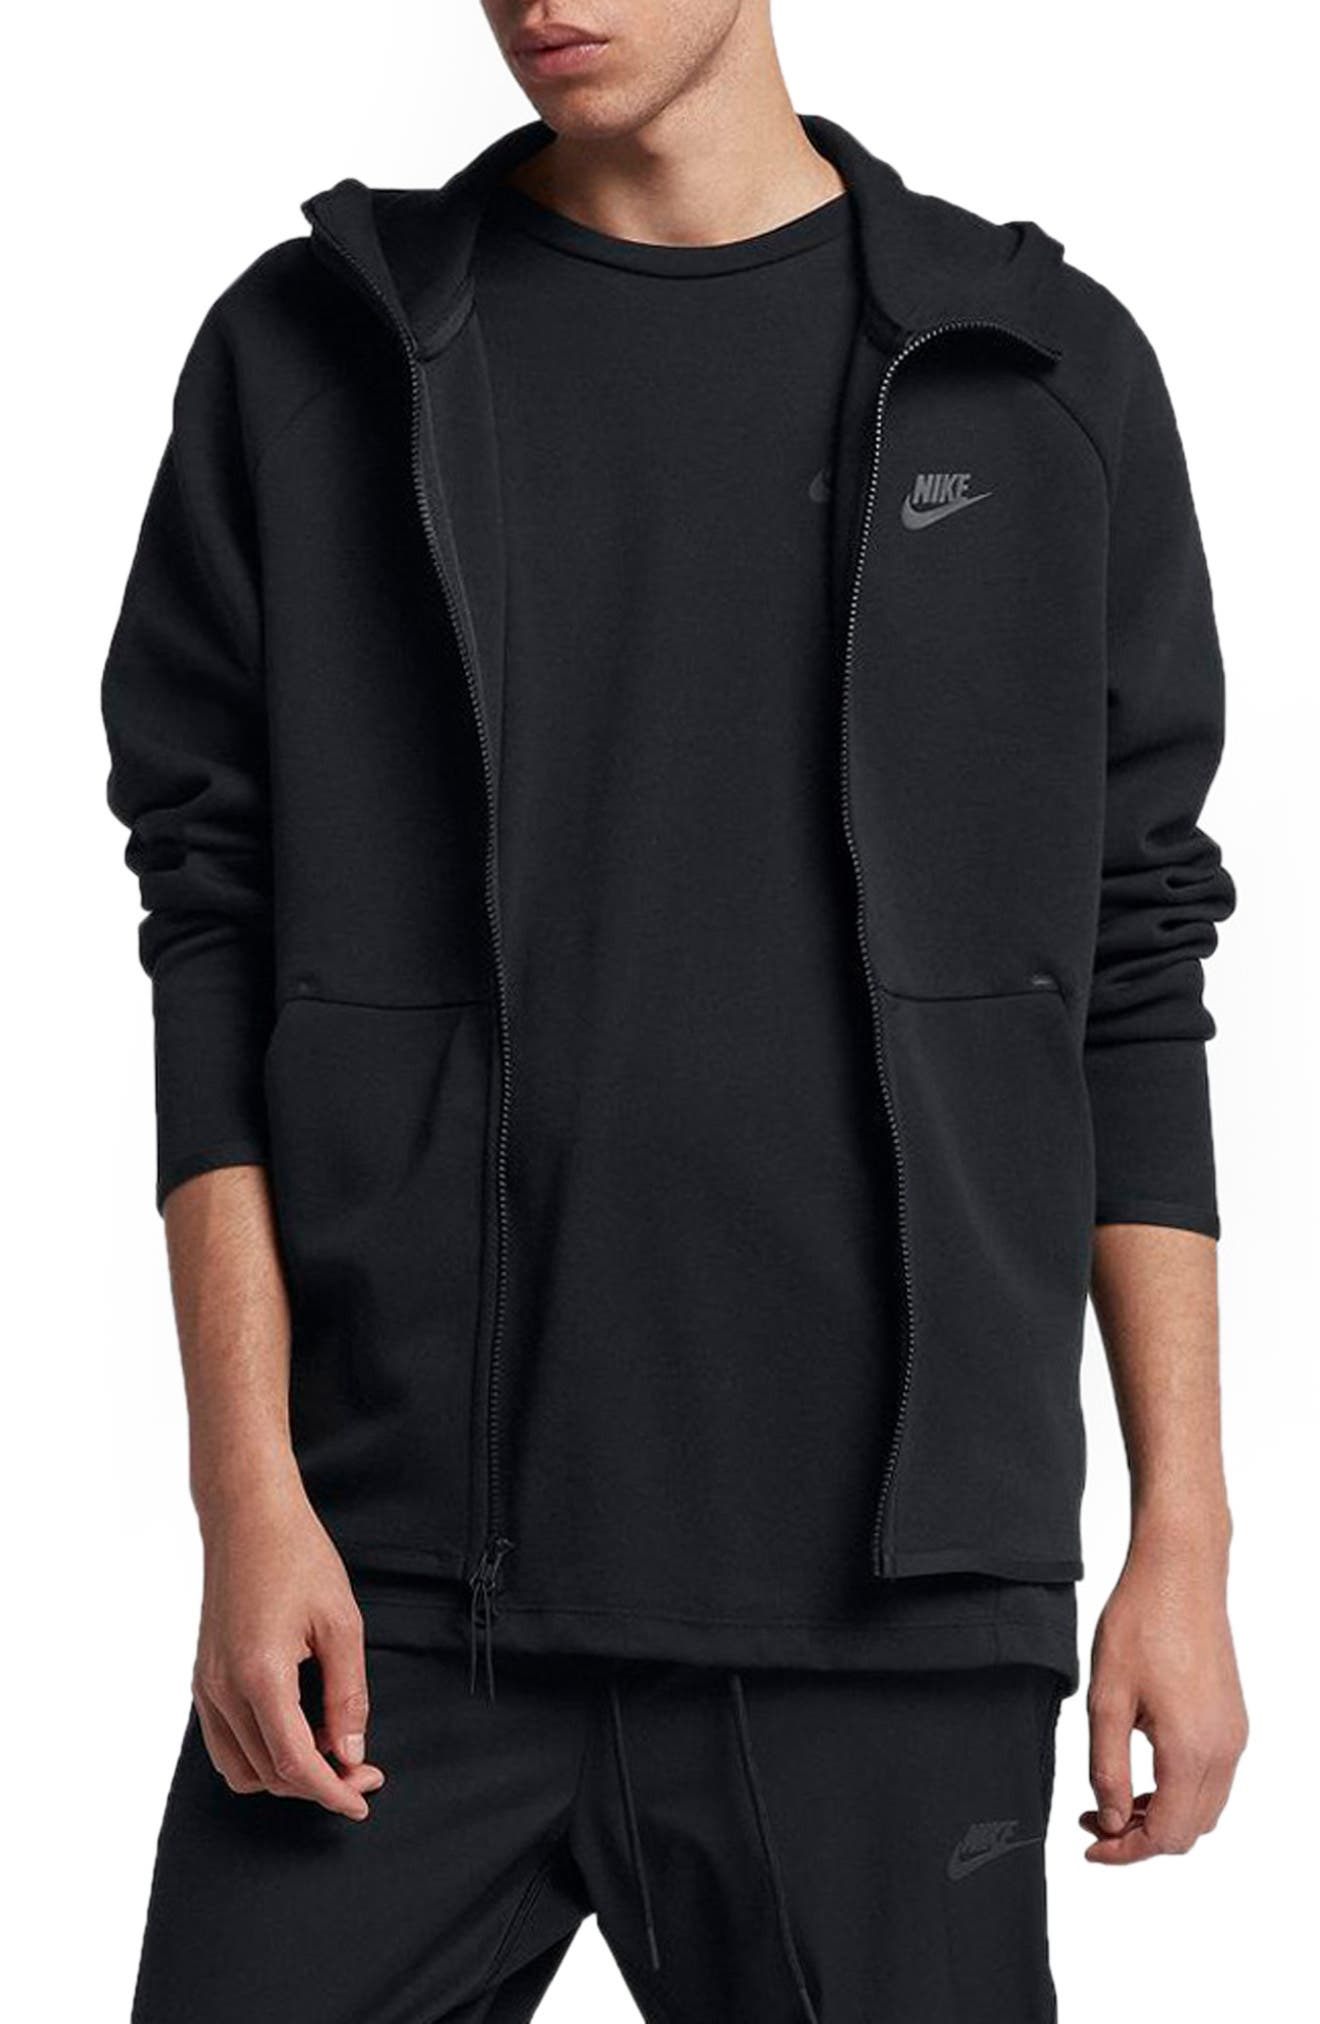 NIKE Sportswear Tech Fleece Zip Hoodie, Main, color, BLACK/ BLACK